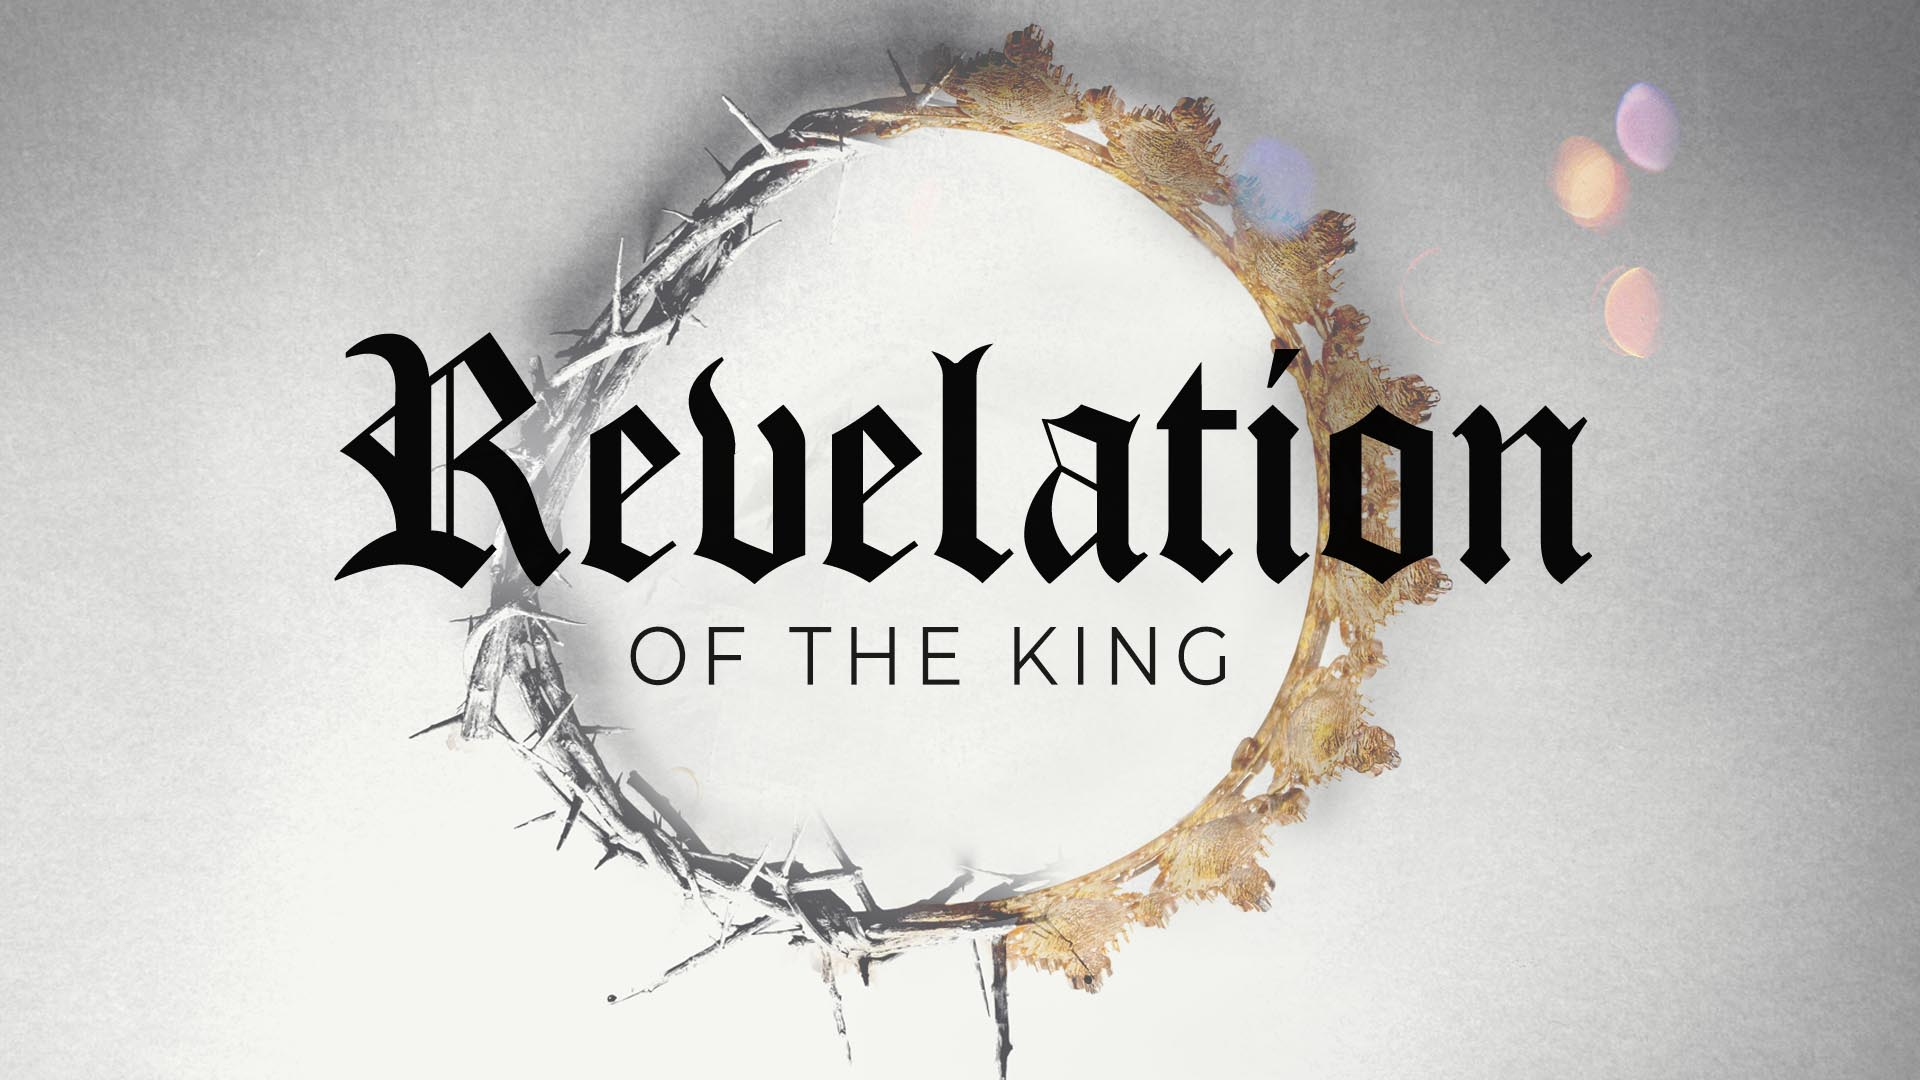 RevelationoftheKing